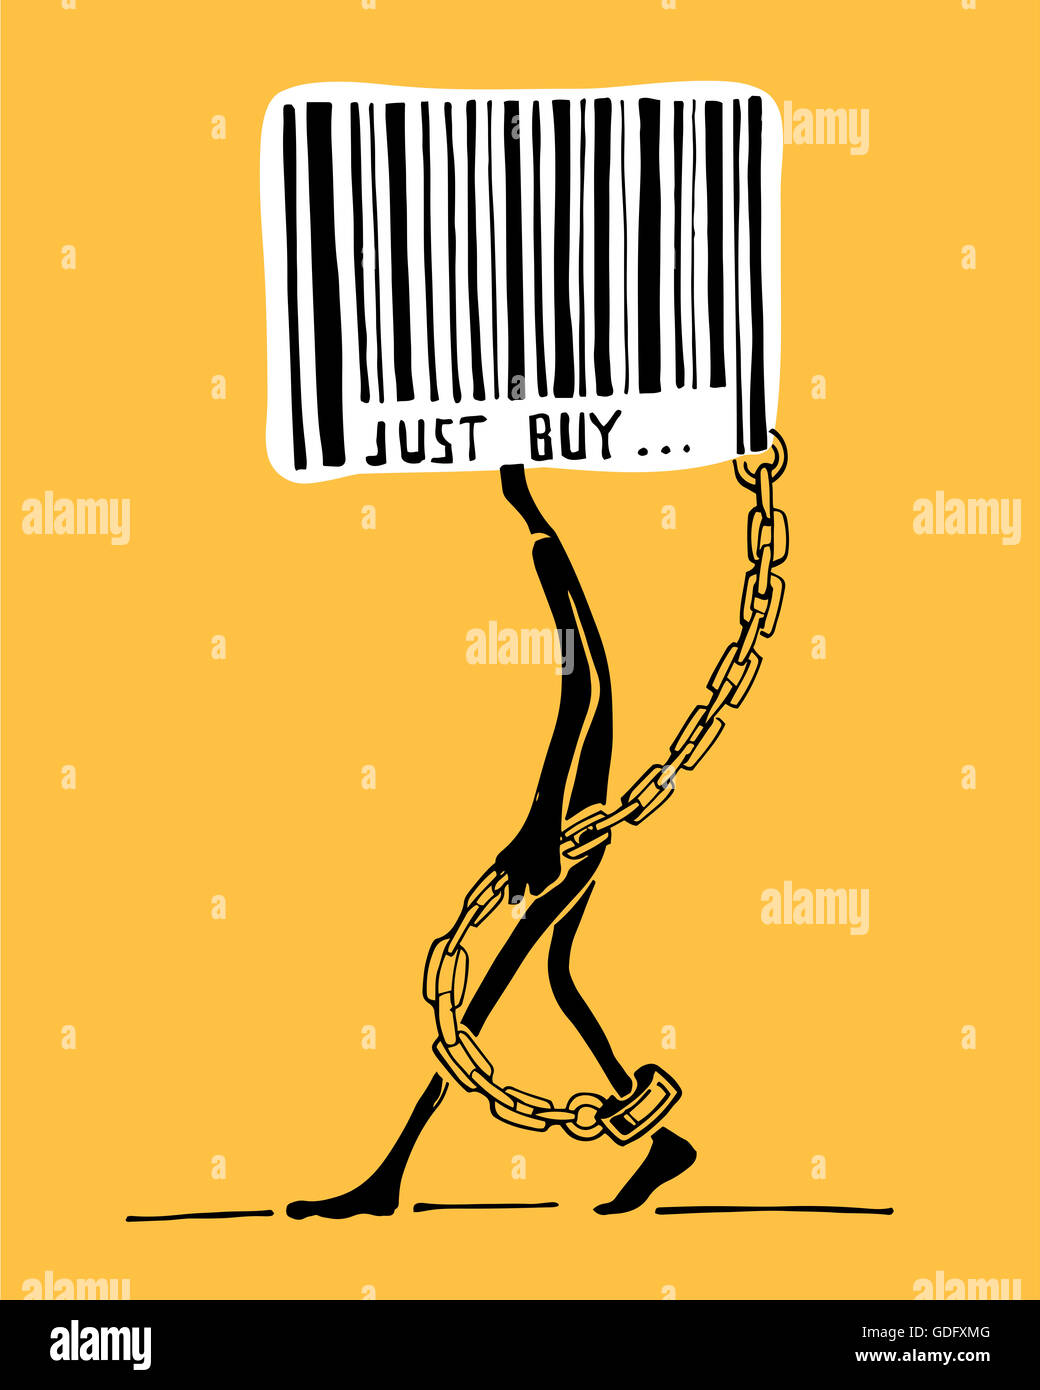 Hand drawn illustration or drawing of a man with a bar code instead of head and with chains - Stock Image